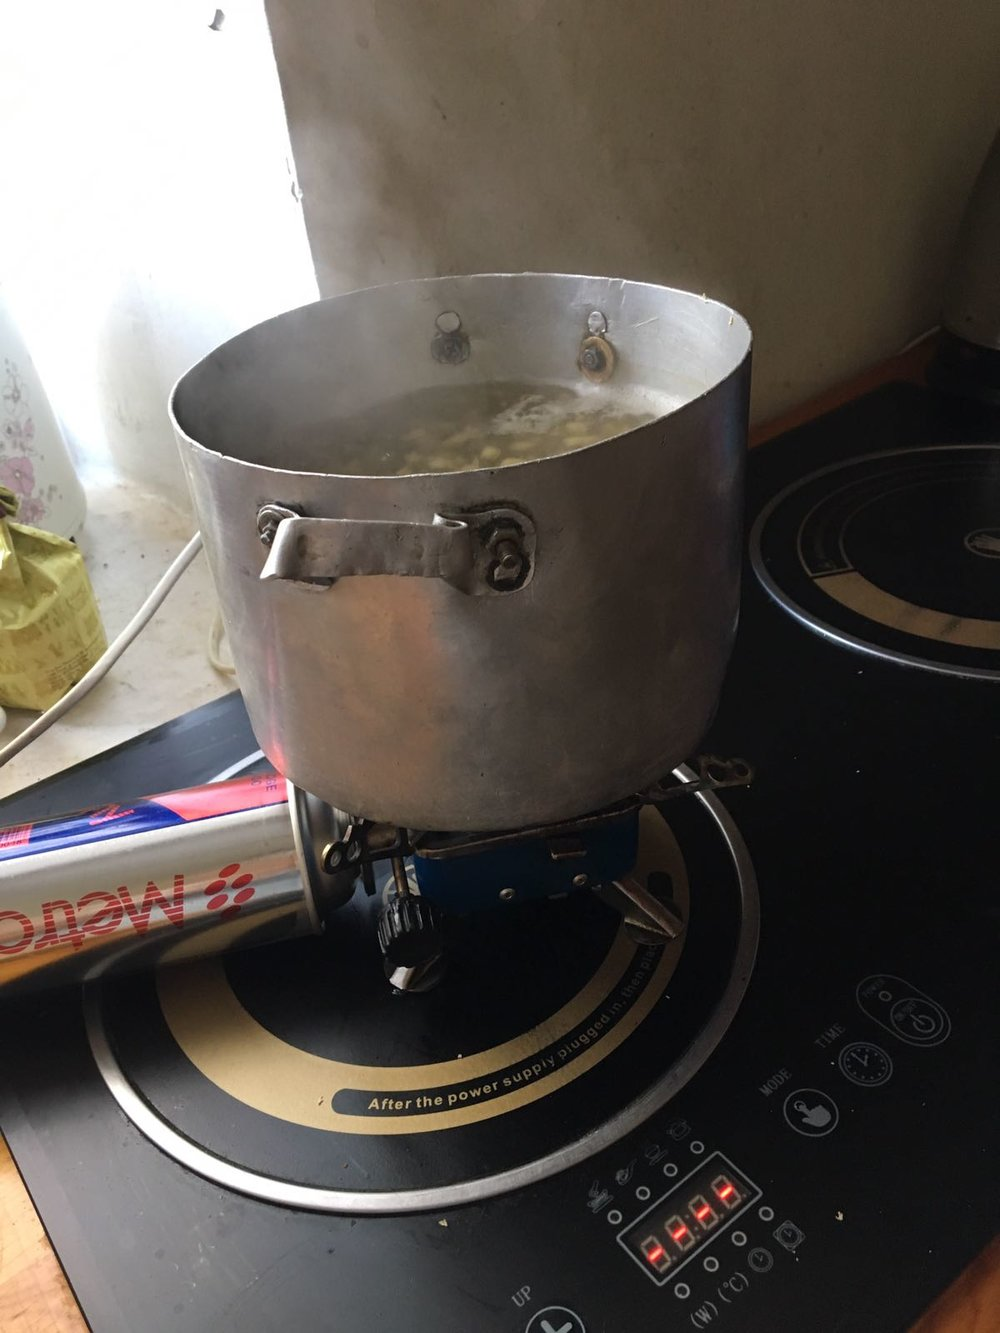 Ginger and sugar on the boil. Why yes, that is a camp stove on top of an induction stove.